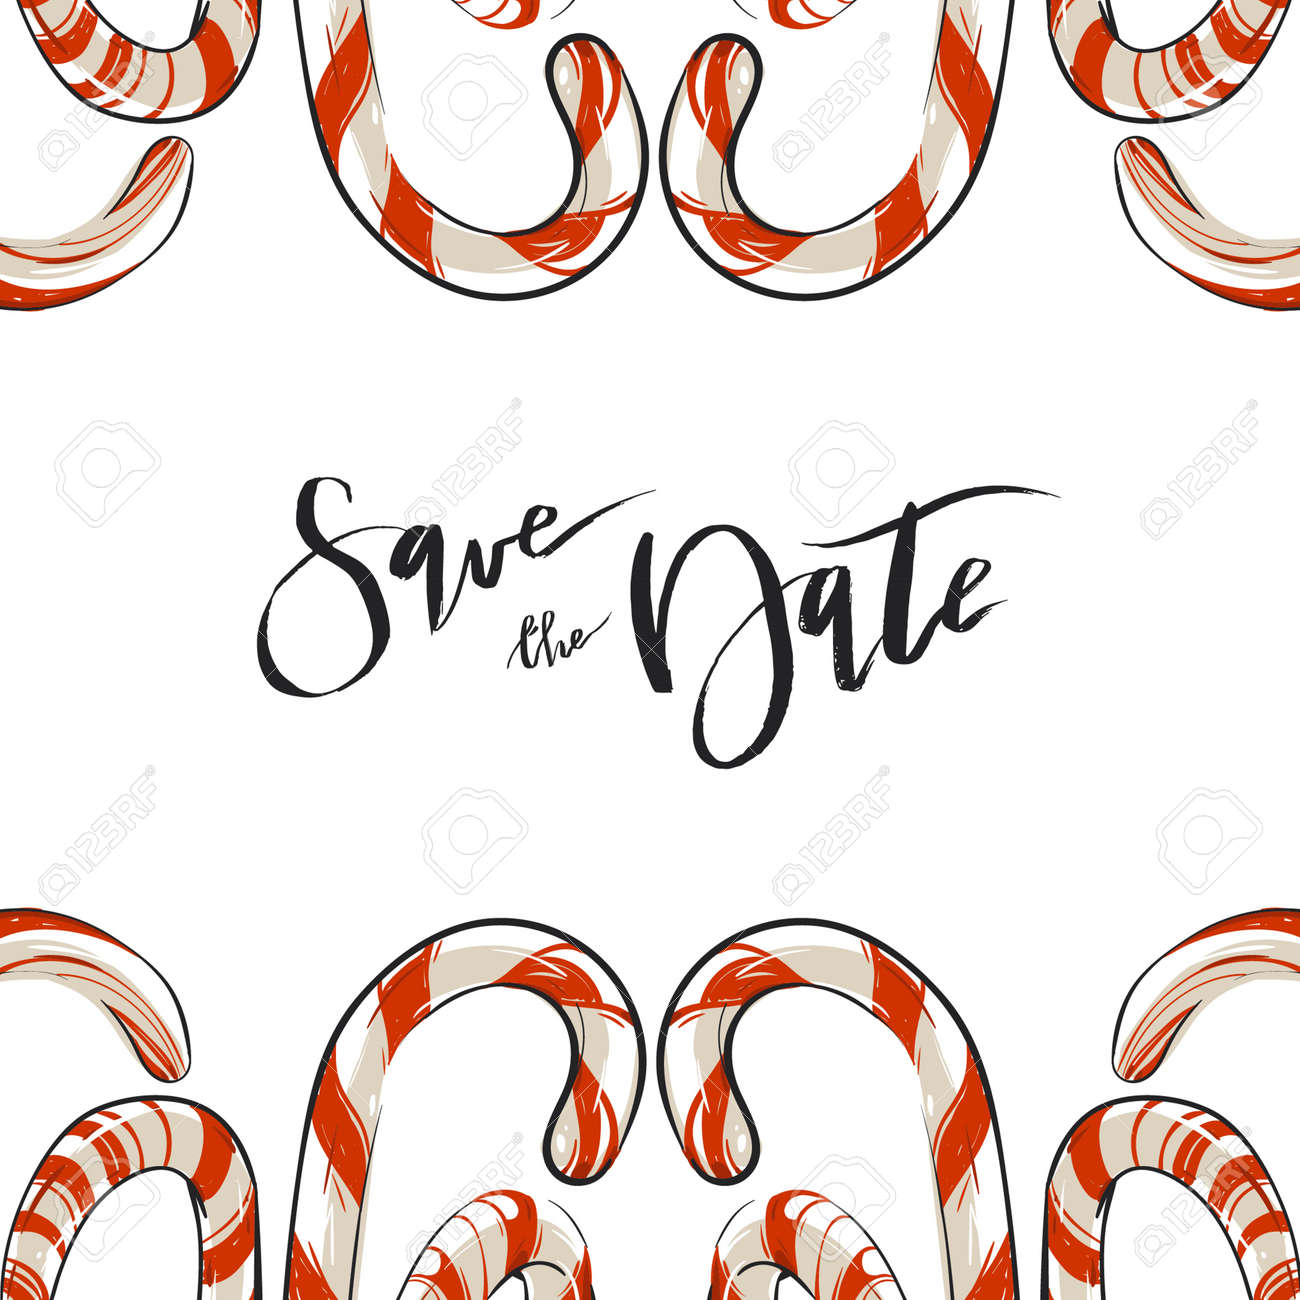 Christmas Save The Date.Hand Drawn Vector Abstract Christmas Greeting Save The Date Card